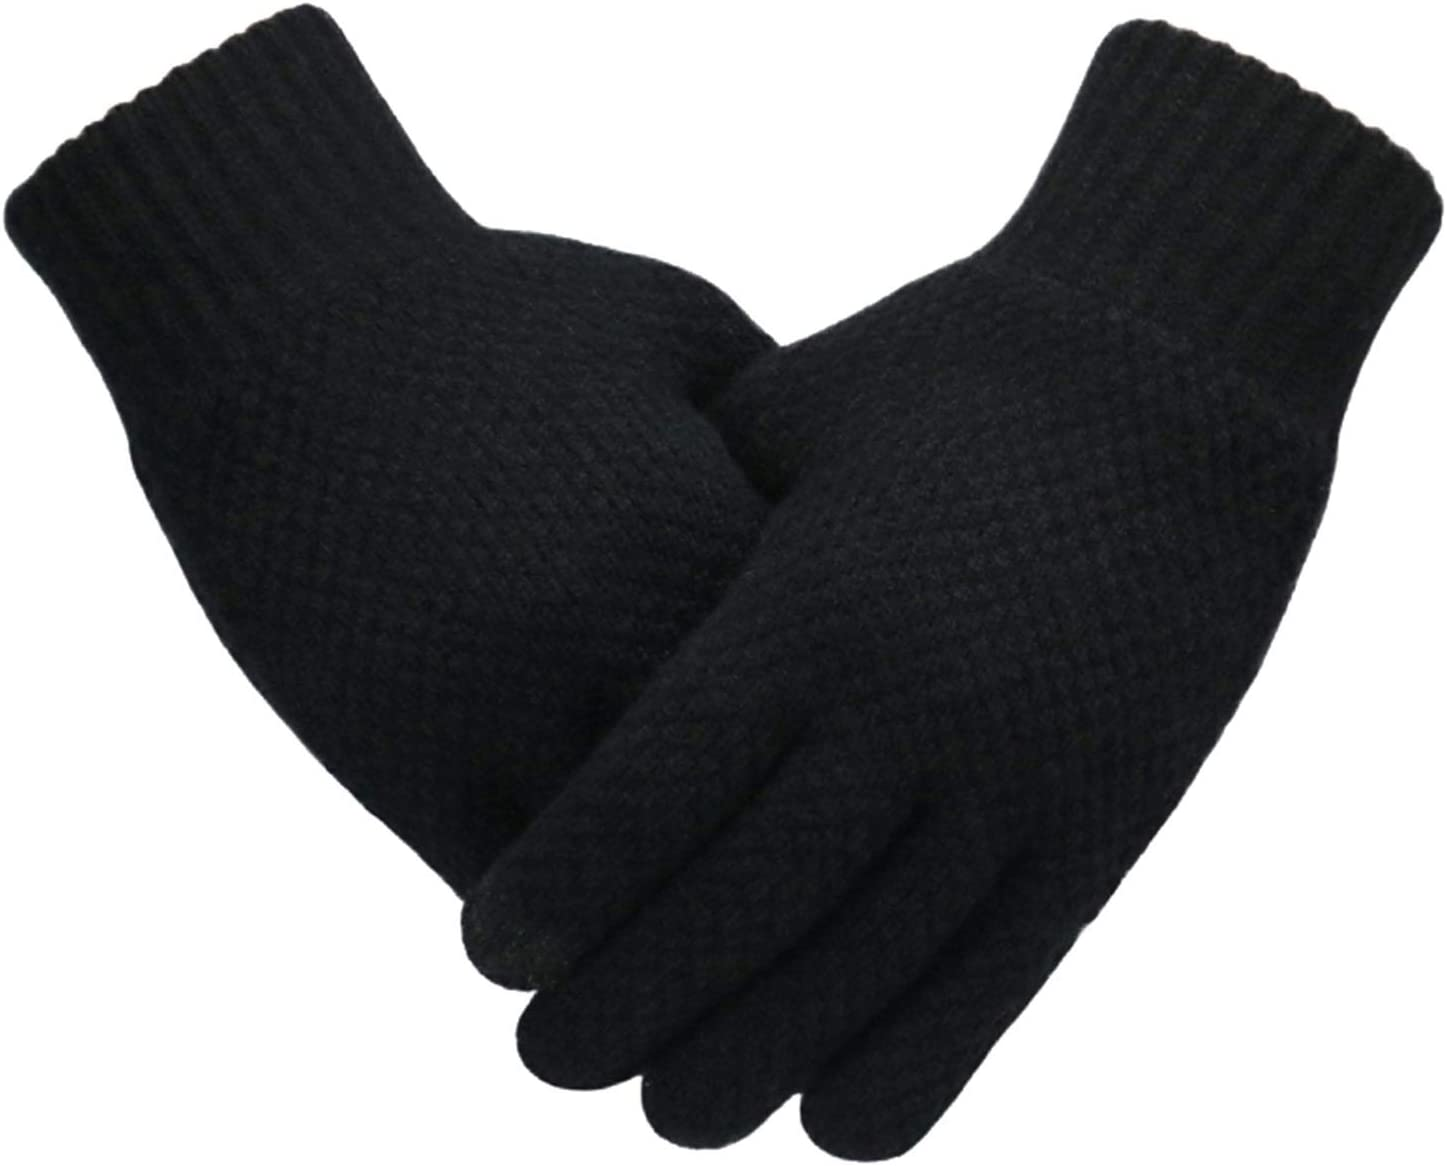 Lace Gloves Men's Knitted Gloves Winter Touch Screen Male Thicken Warm Wool Cashmere Solid Gloves Men Glove Business Autumn (Farbe : BlackNoLogo, Handschuhgröße : One Size)